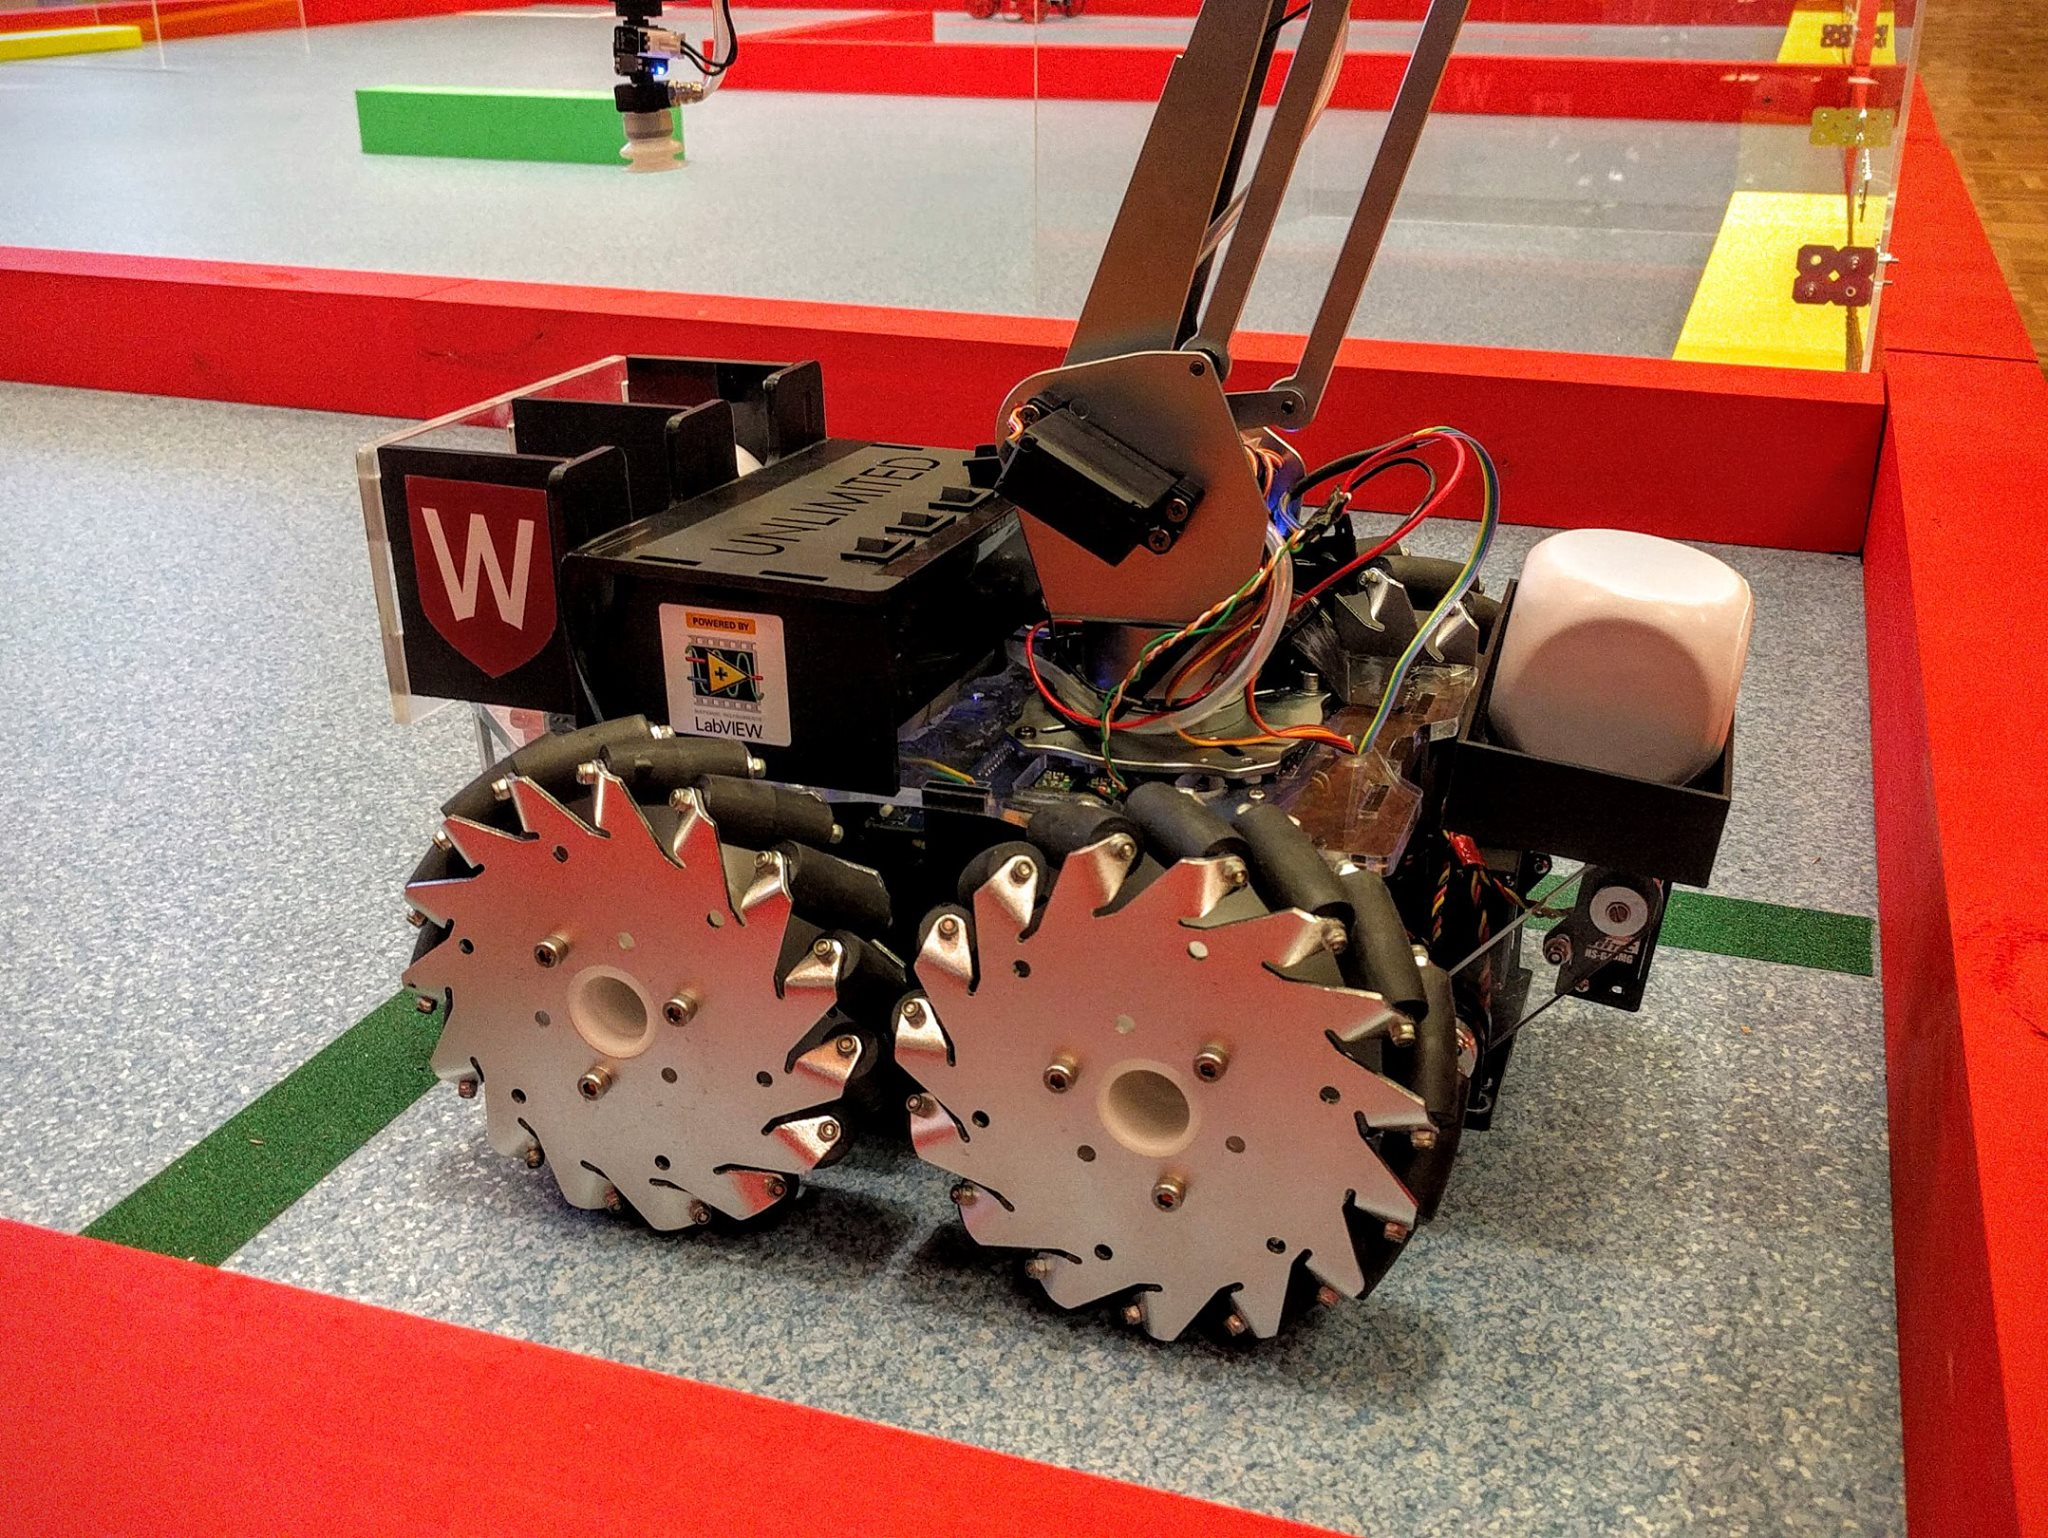 Western's Unlimited Robotics Club Robot